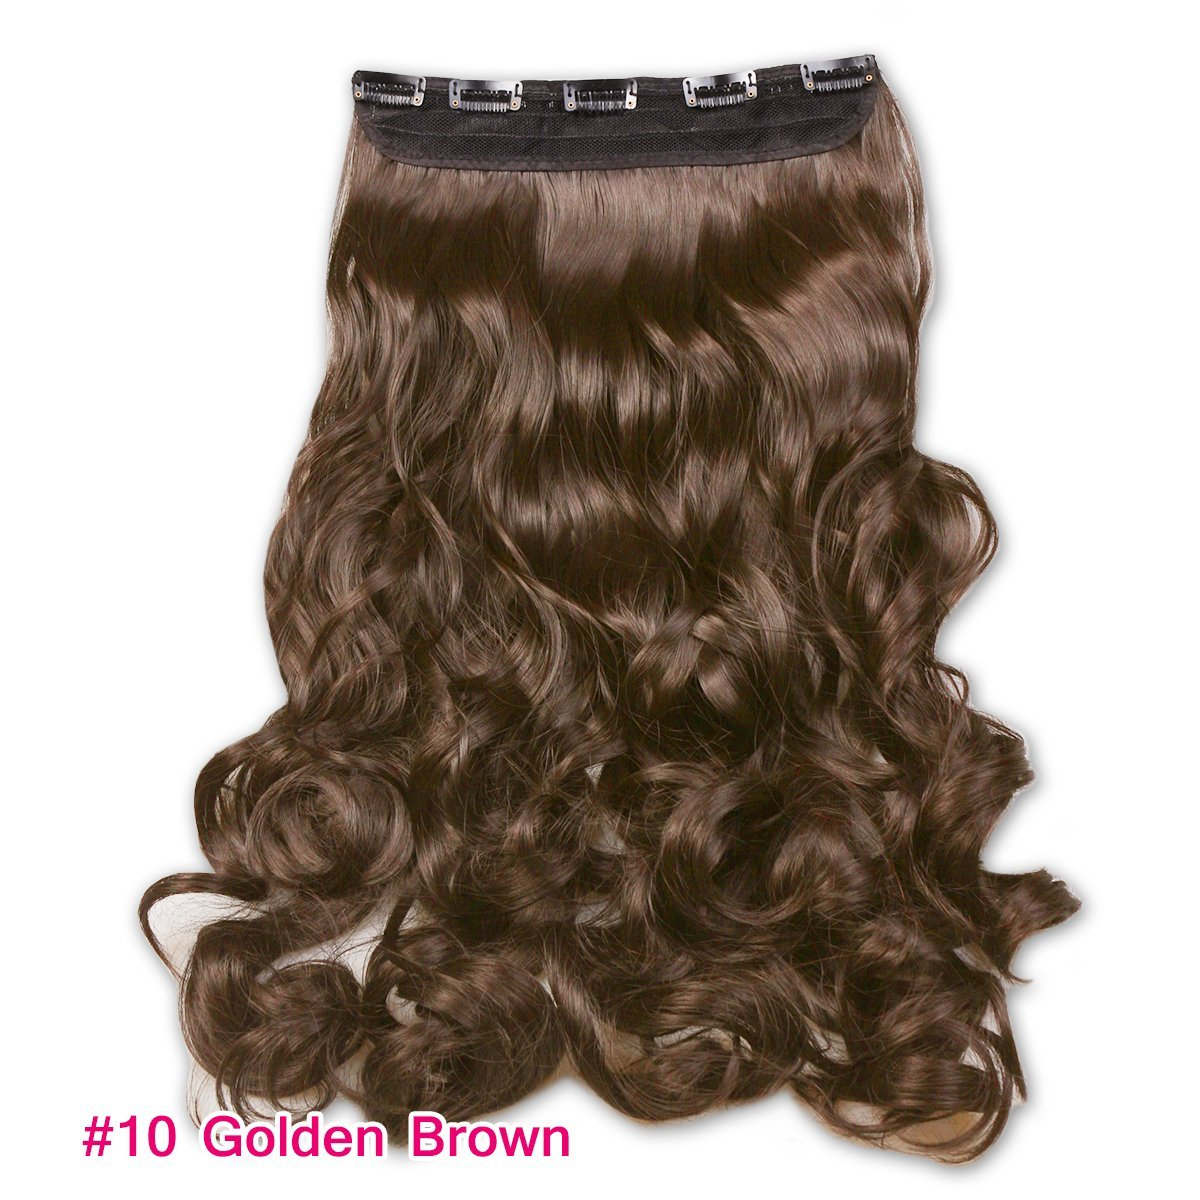 """Risinggirl® 22"""" 1-pack Full Head Curly Wave Clips in Synthetic Hair Extensions Hair pieces for Women 5 Clips 4.9 Oz Per Piece #10 Golden Brown"""